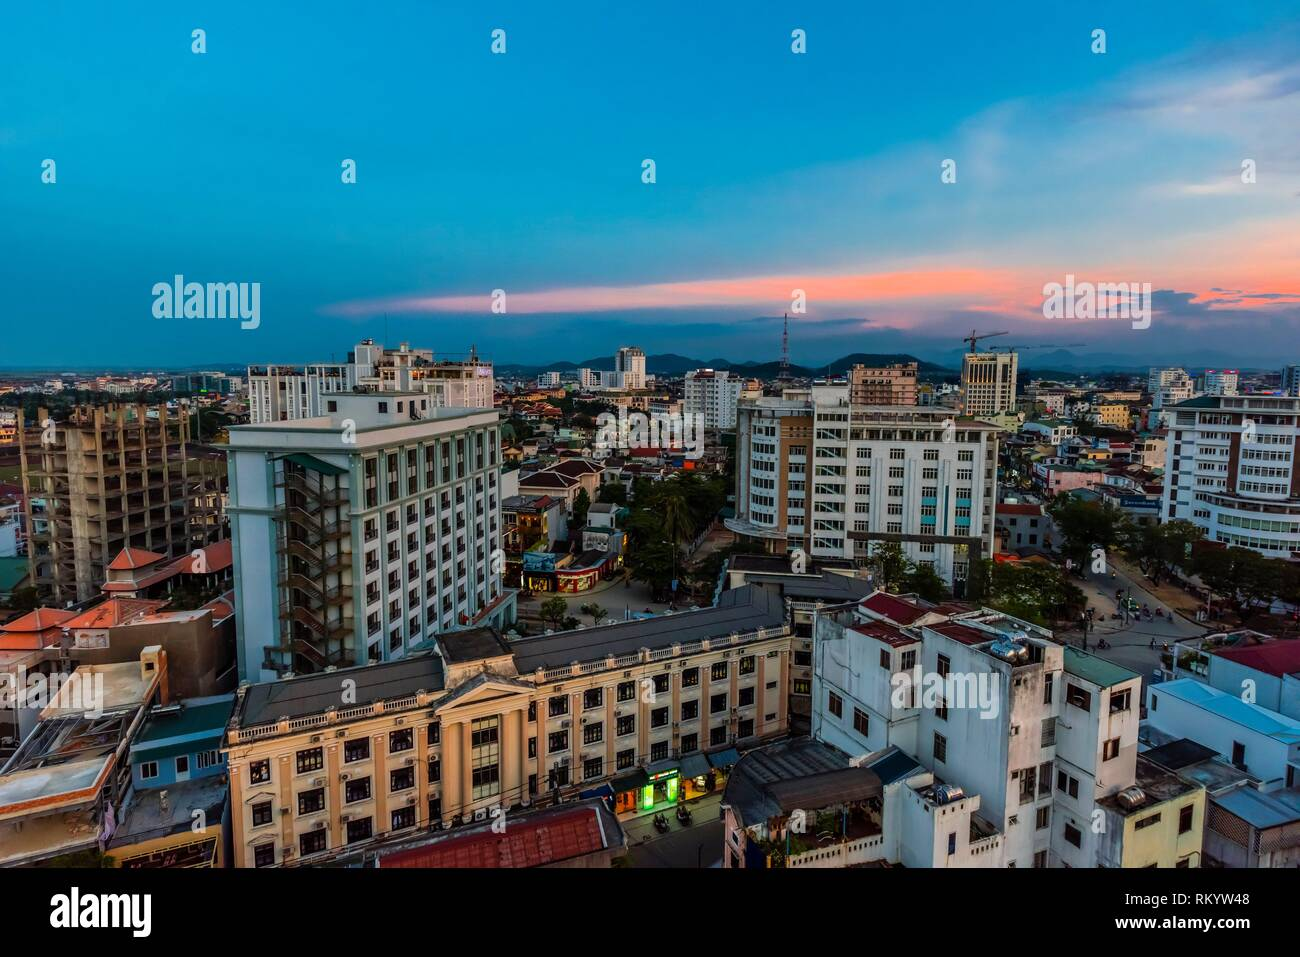 High angle view of buildings in Hue, Central Vietnam. - Stock Image